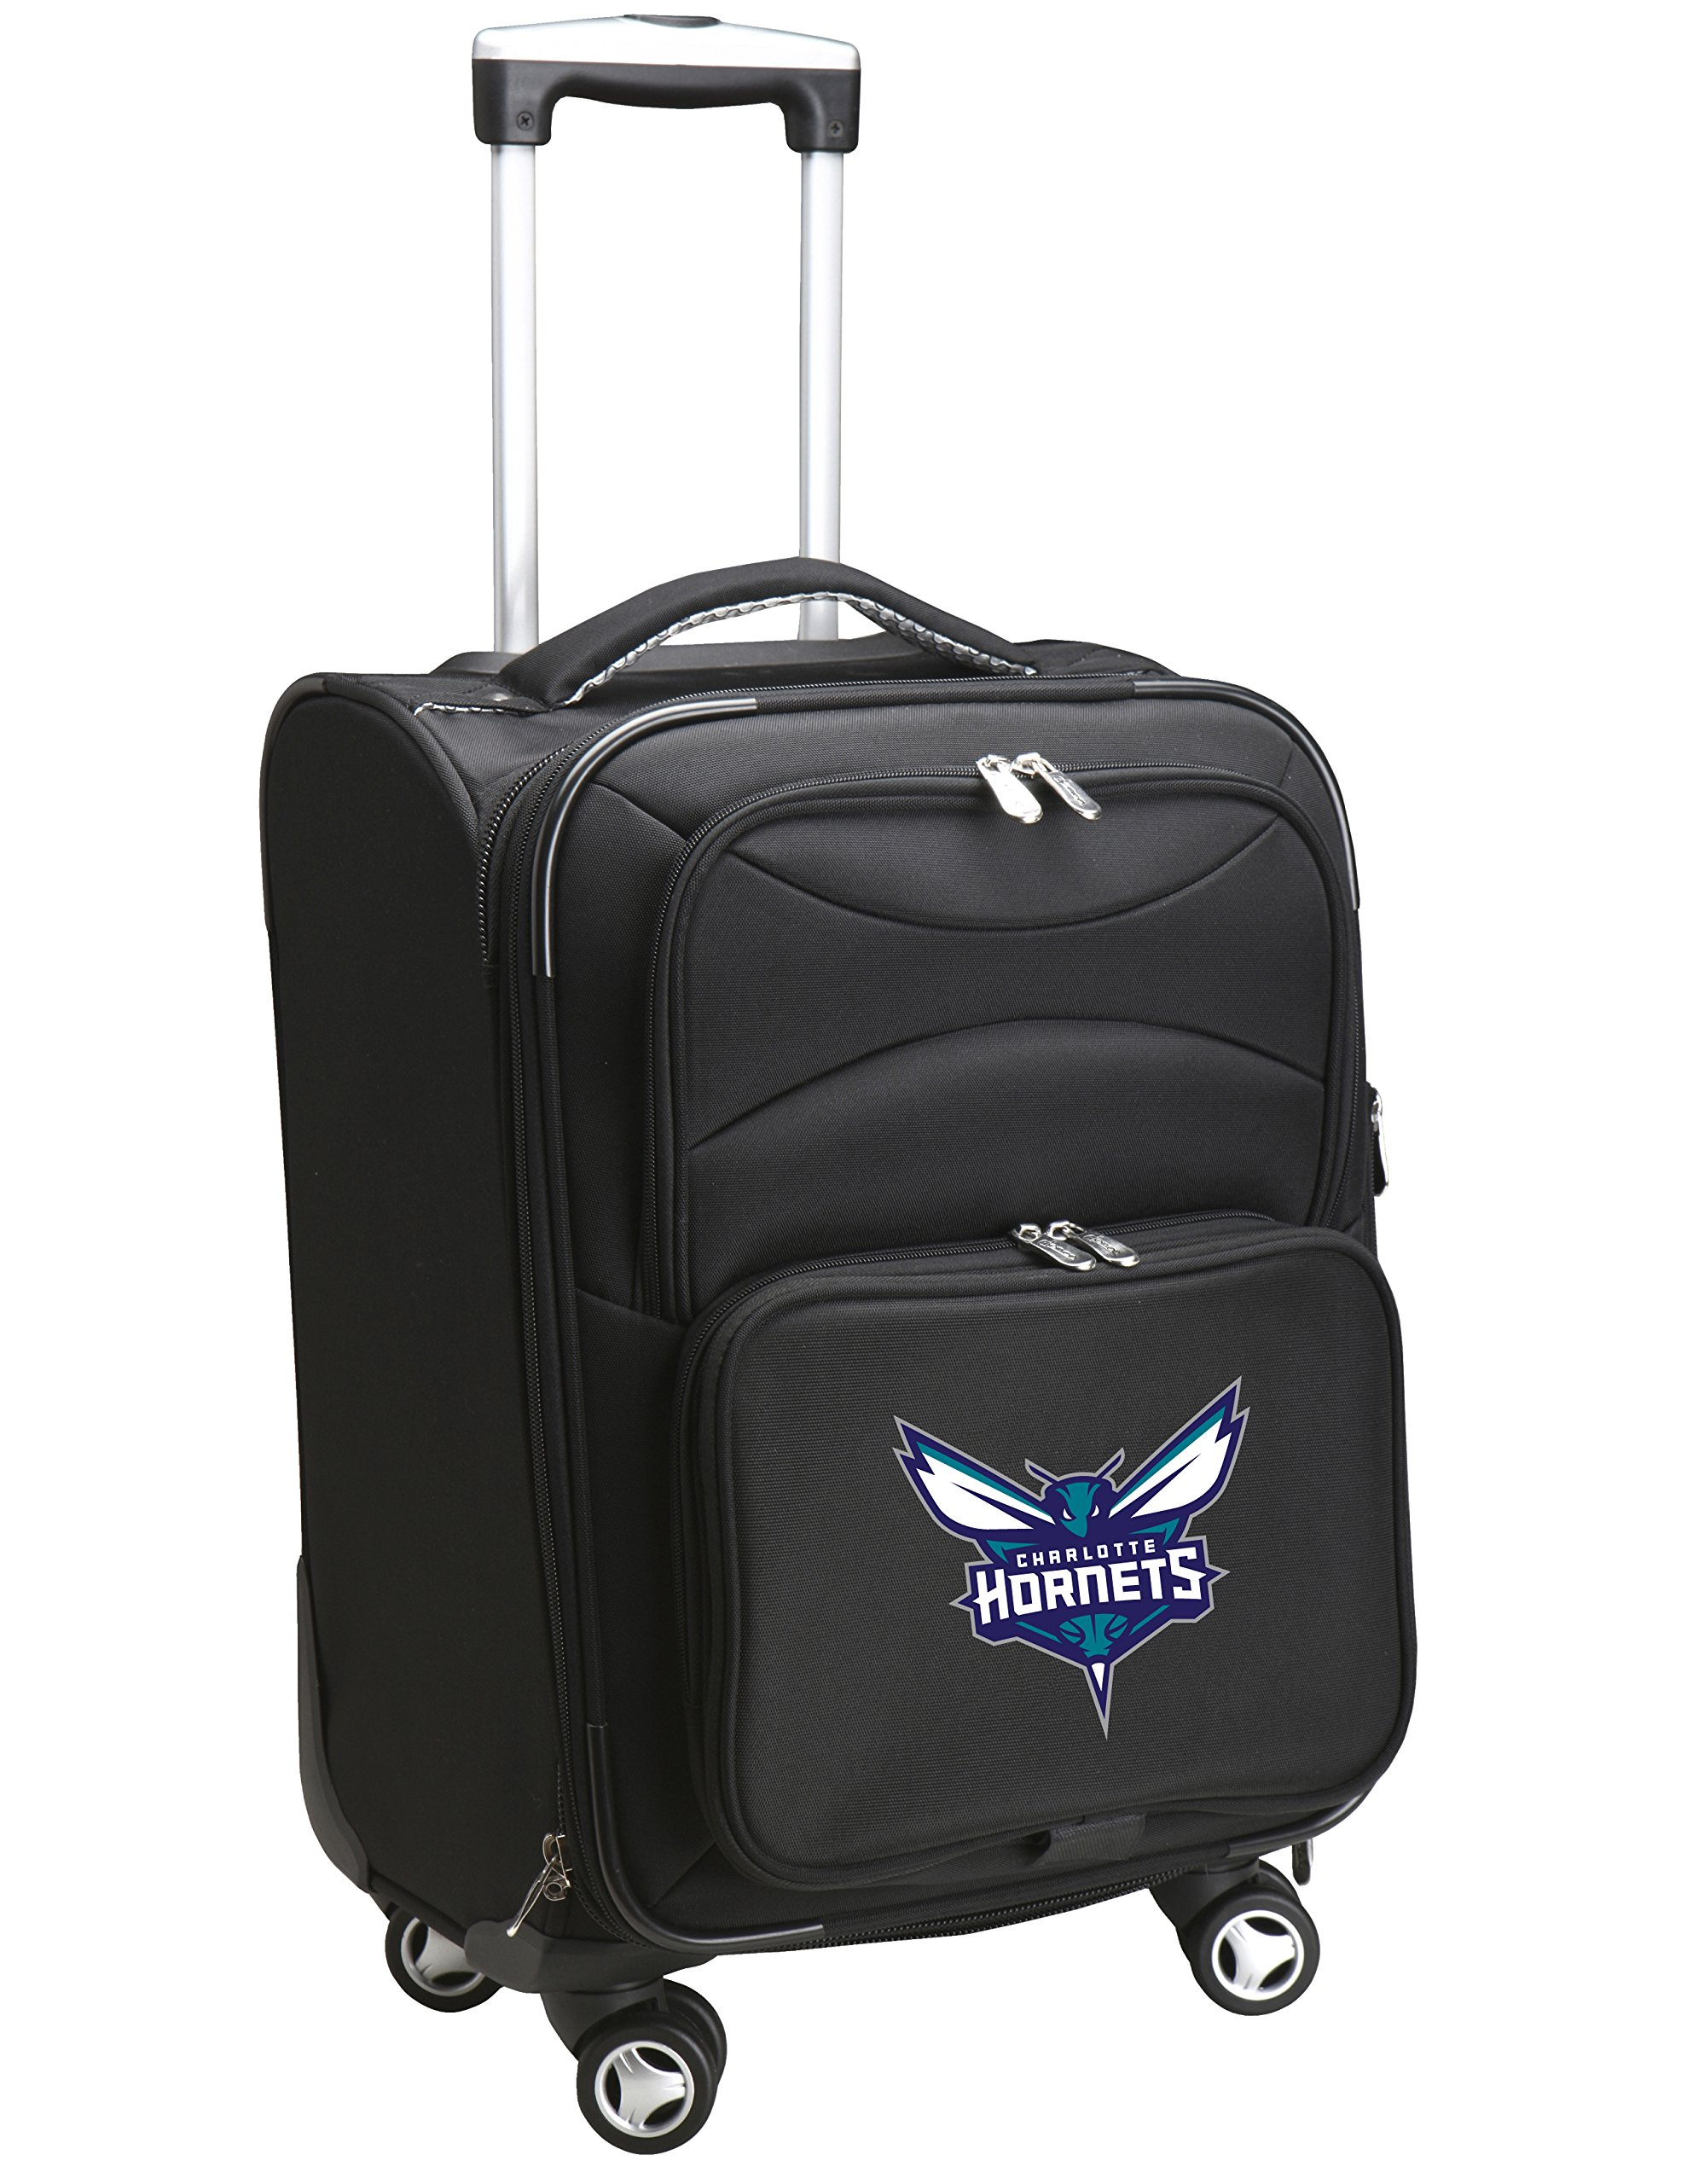 Denco NBA Charlotte Hornets Carry-On Luggage Spinner by Denco (Image #1)